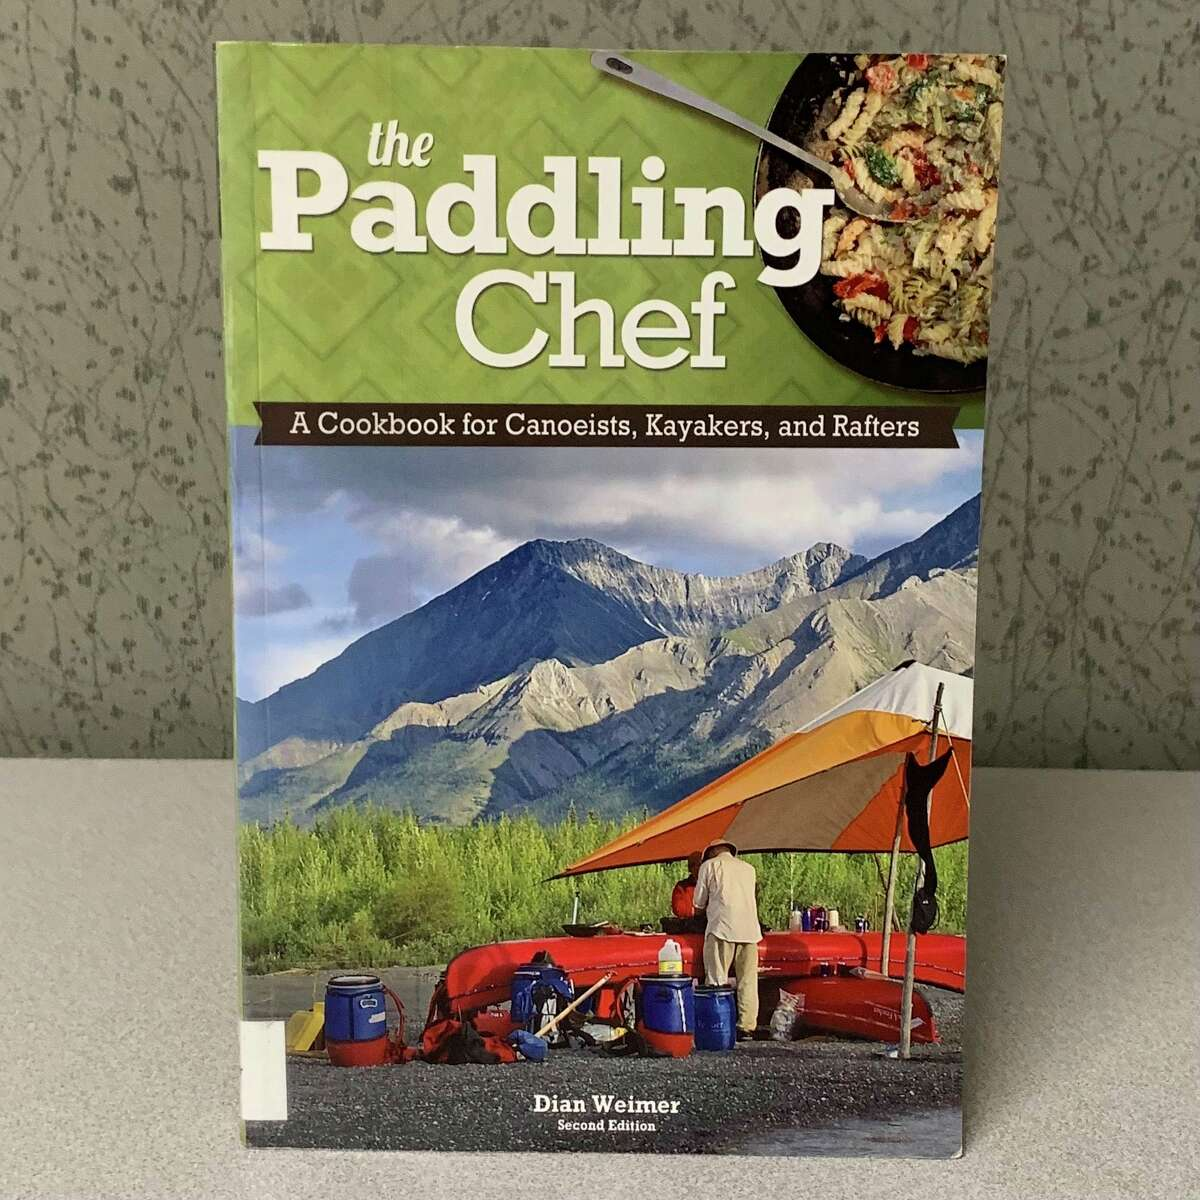 Using recipes from India, China and other countries,